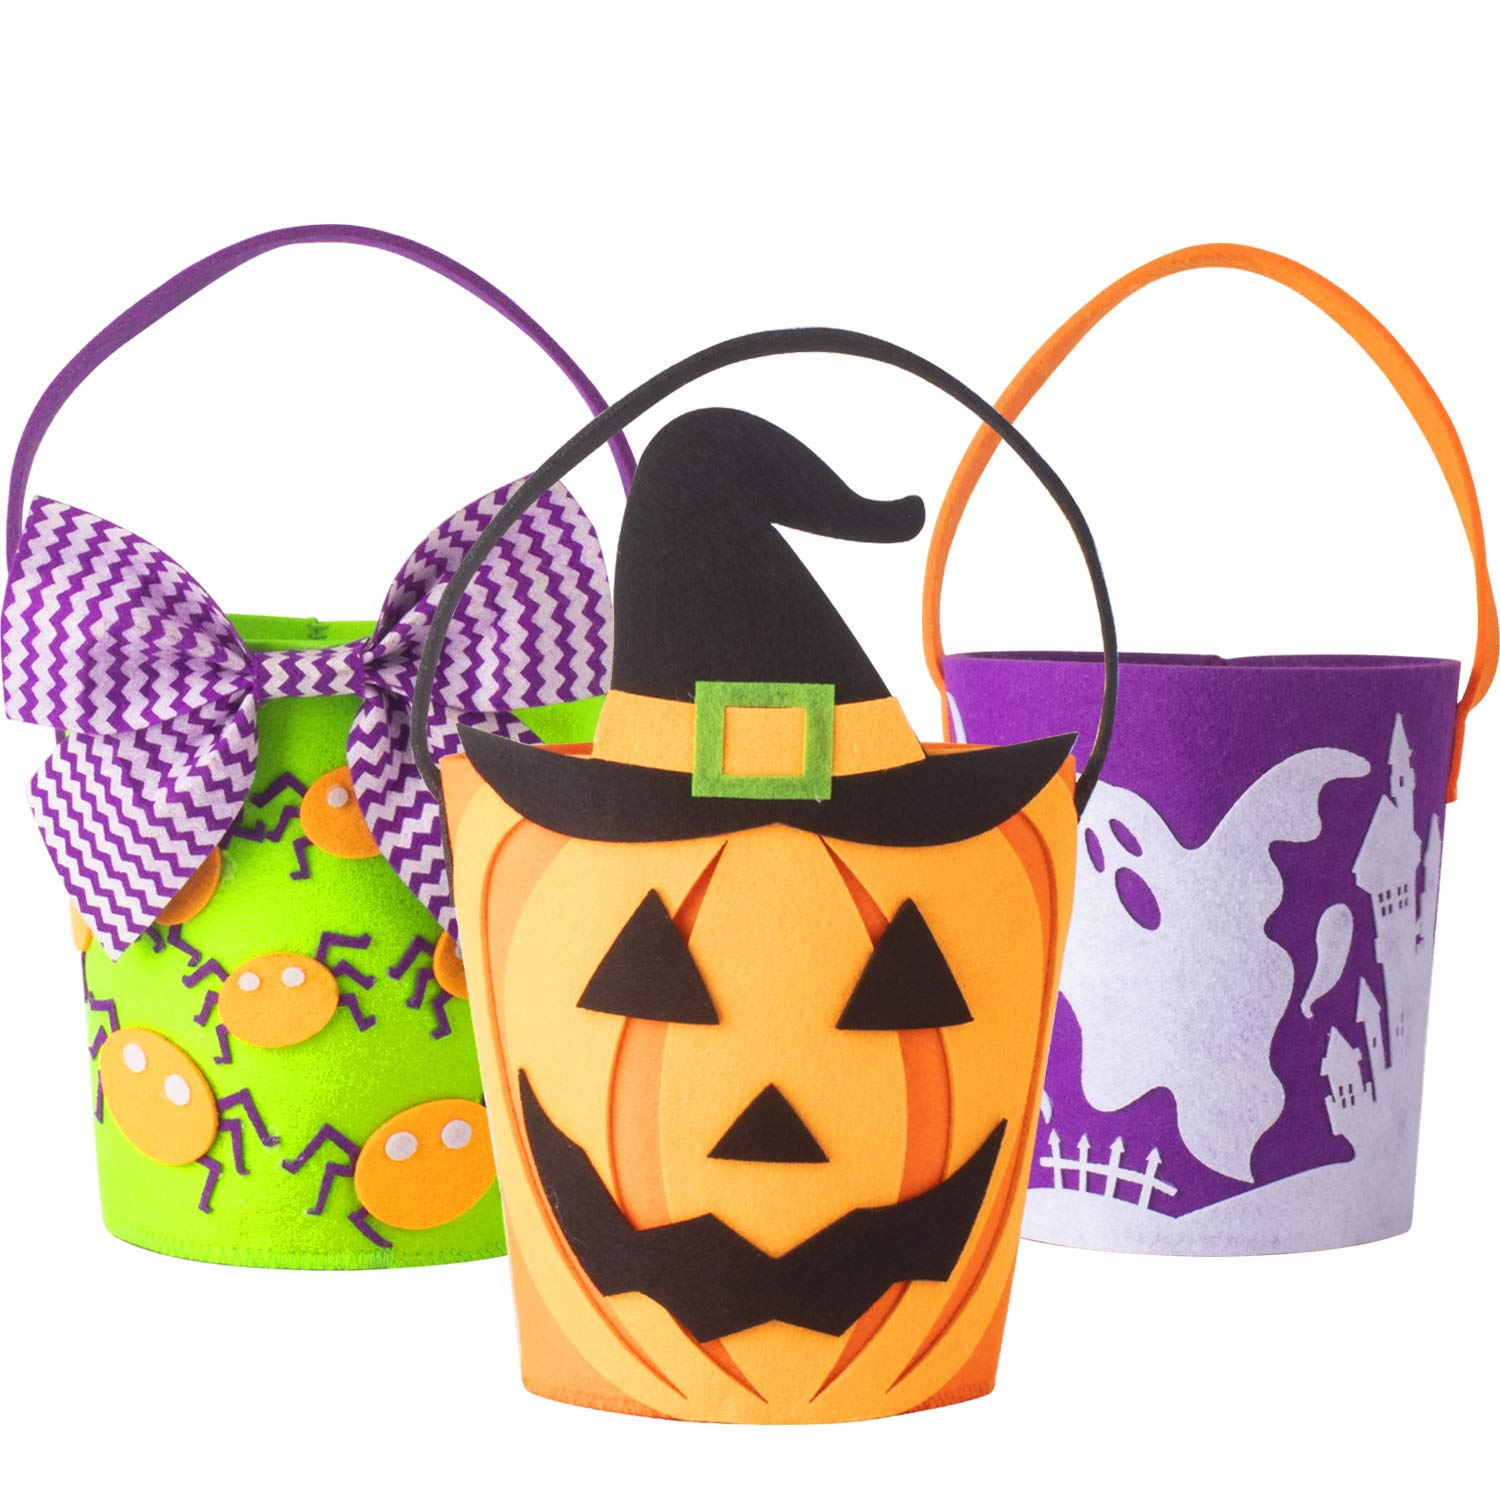 할로윈 트릭 오어 트릿 바구니 토트 3개 세트 KI Store Trick or Treat Bags Halloween Candy Buckets Baskets Totes Gift Bags